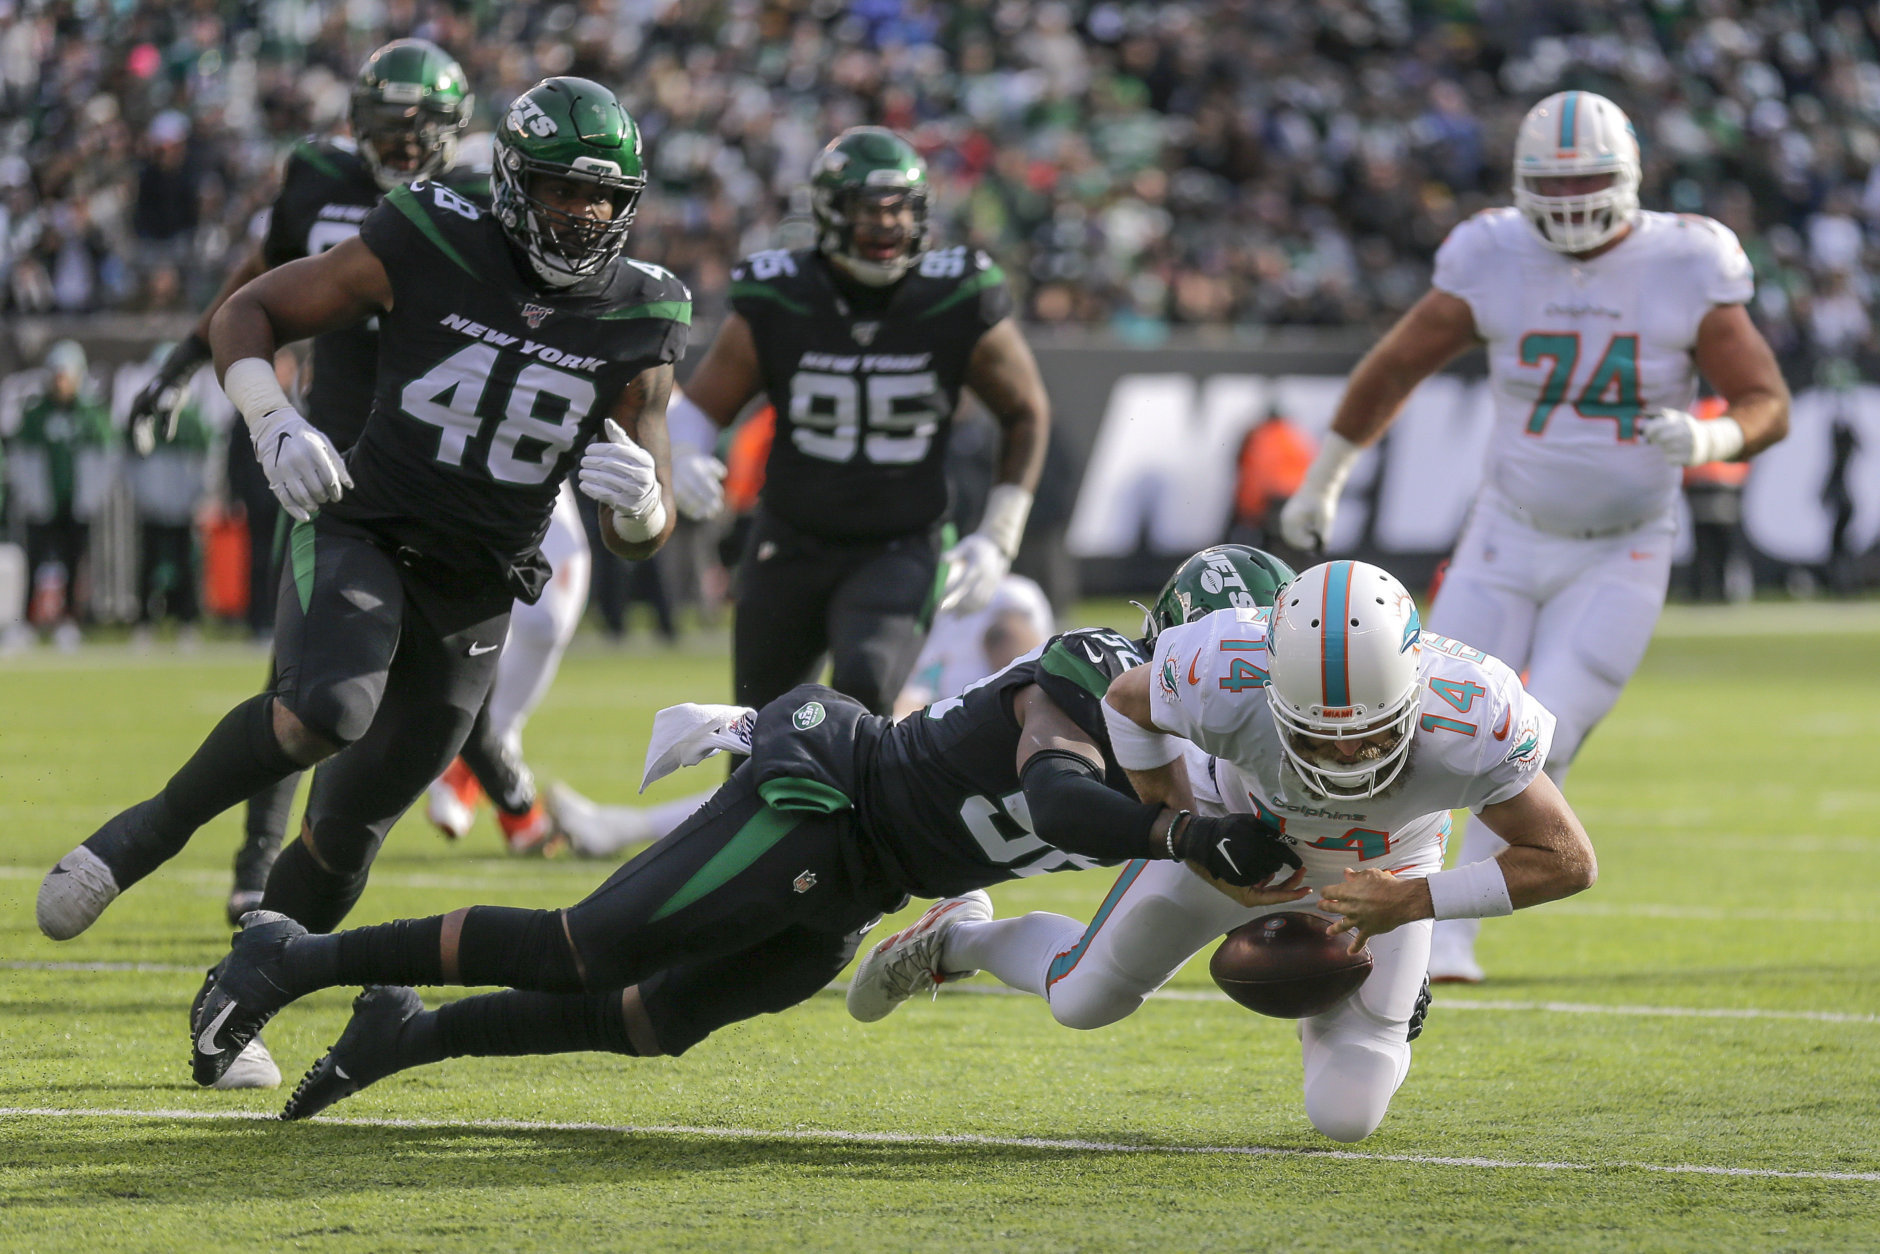 """<p><em><strong>Dolphins 21</strong></em><br /> <em><strong>Jets 22</strong></em></p> <p>Miami is learning what seven other teams already learned the hard way: When <a href=""""https://www.miamidolphins.com/news/top-news-ryan-fitzpatrick-feeling-better-than-ever"""" target=""""_blank"""" rel=""""noopener"""">Ryan Fitzpatrick feels good</a>, that can only be good for the opposition.</p>"""